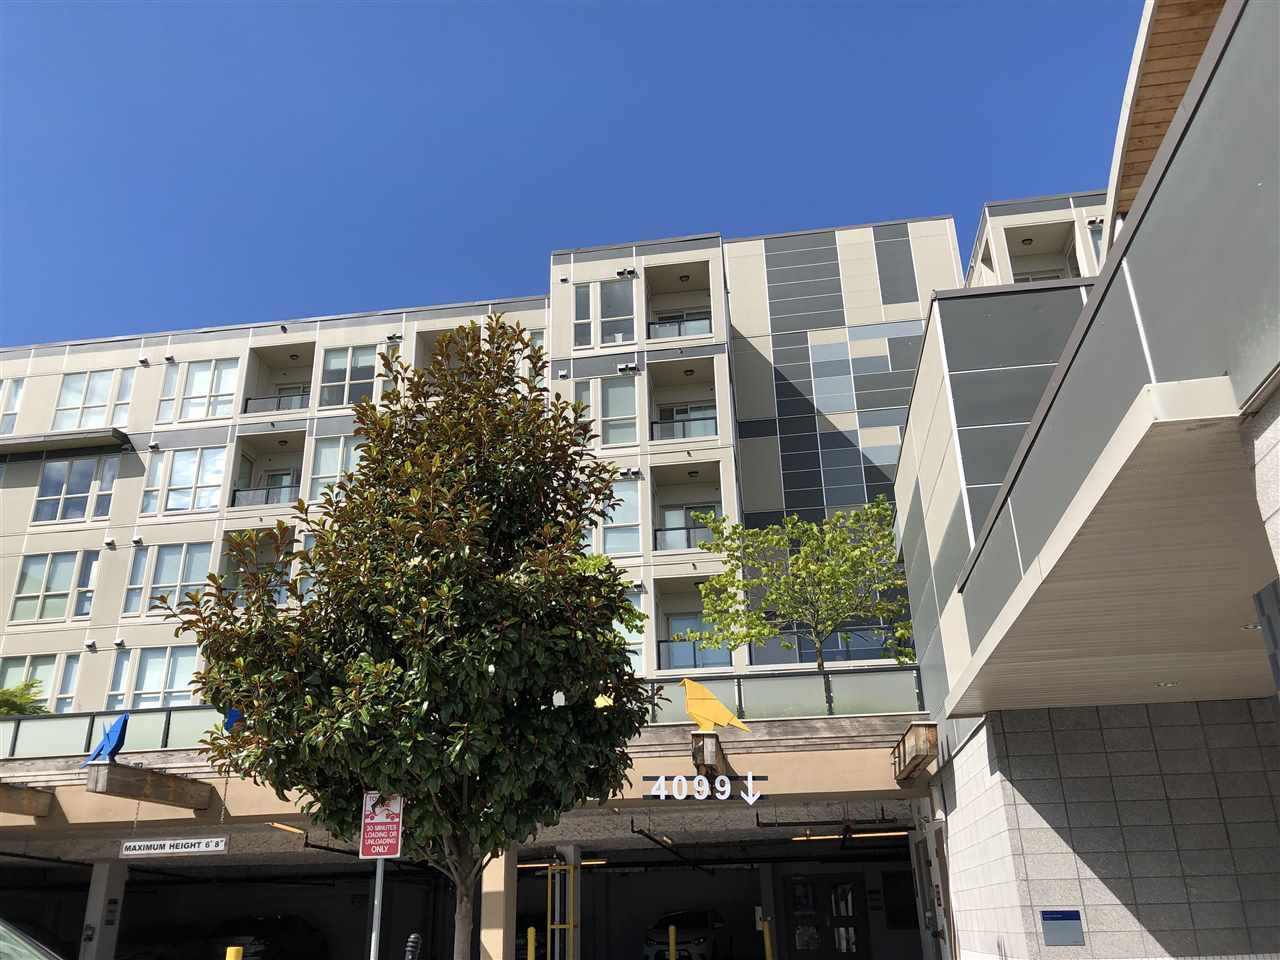 """Centre location in Richmond!""""REMY""""located at Cambie Cross Garden city is an Incredible value in a  rainscreened pet & rental friendly building! This super efficient & bright and Affordable Studio  facing East, Connecting the roof Garden with huge patio, Stylish, eco-friendly and modern finishings, with geothermal heating and cooling. Just a short  stroll away from Aberdeen shopping plaza & the Canada Line, many malls, restaurants, parks and  more! Don't miss out! bring your best offer!  Open House on Saturday Sept, 26th, @ 2-4PM."""